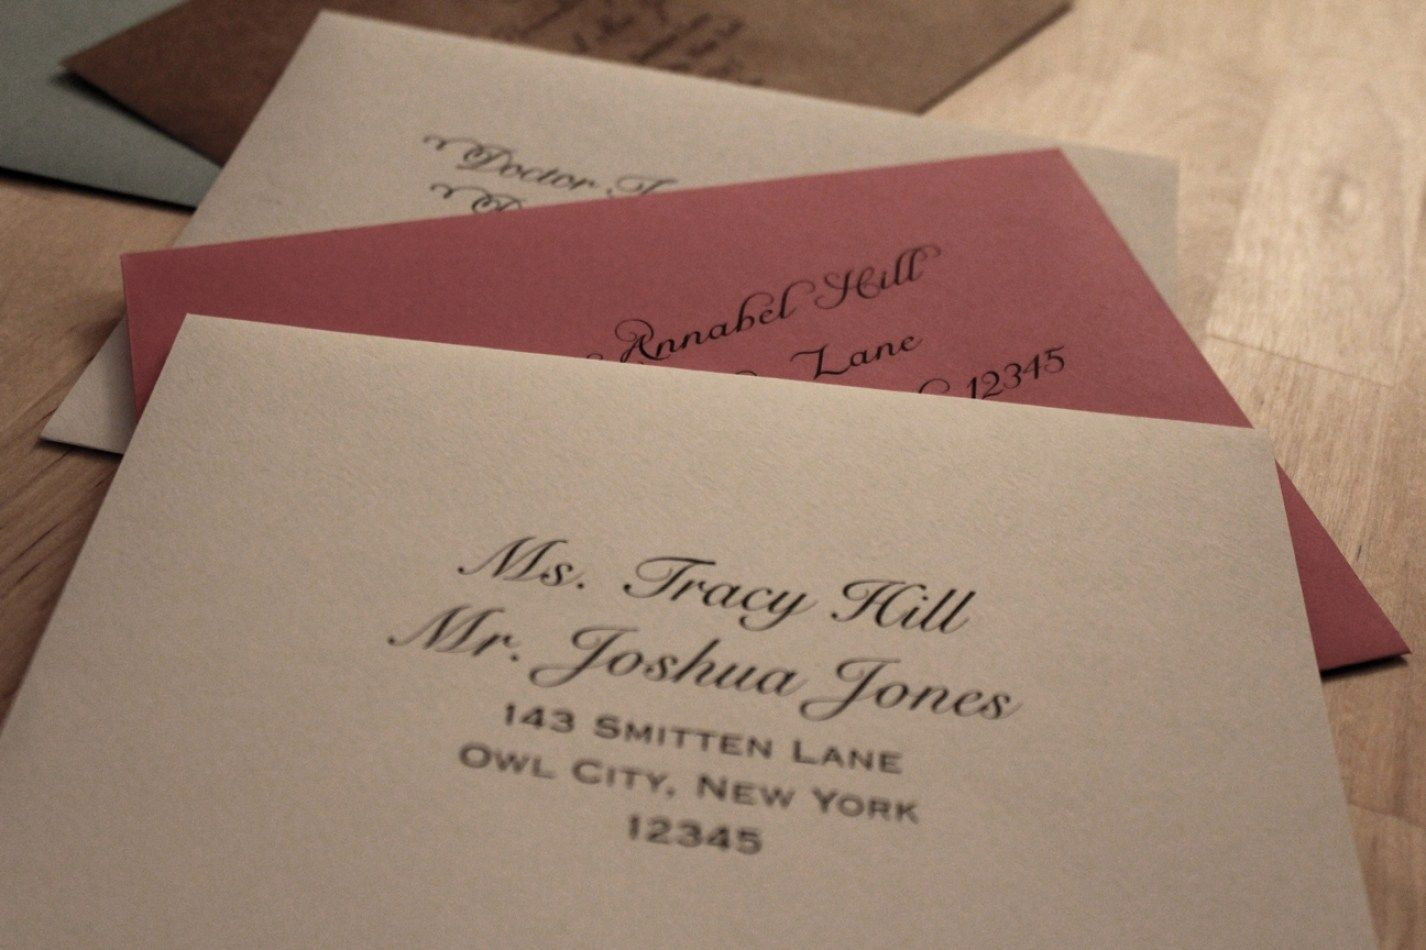 Contemporary Formal Way To Address Wedding Invitations Photo ...